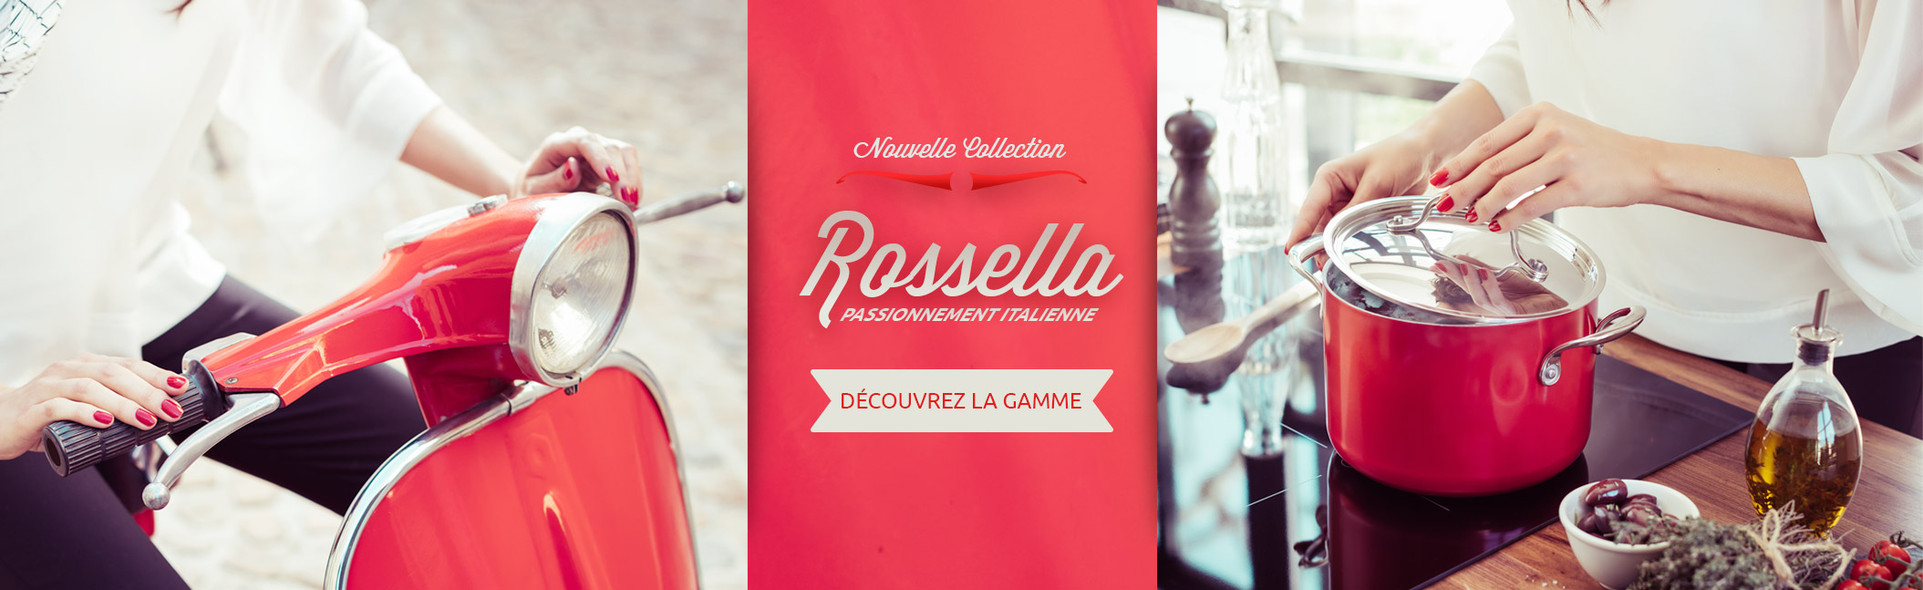 Gamme Rossella